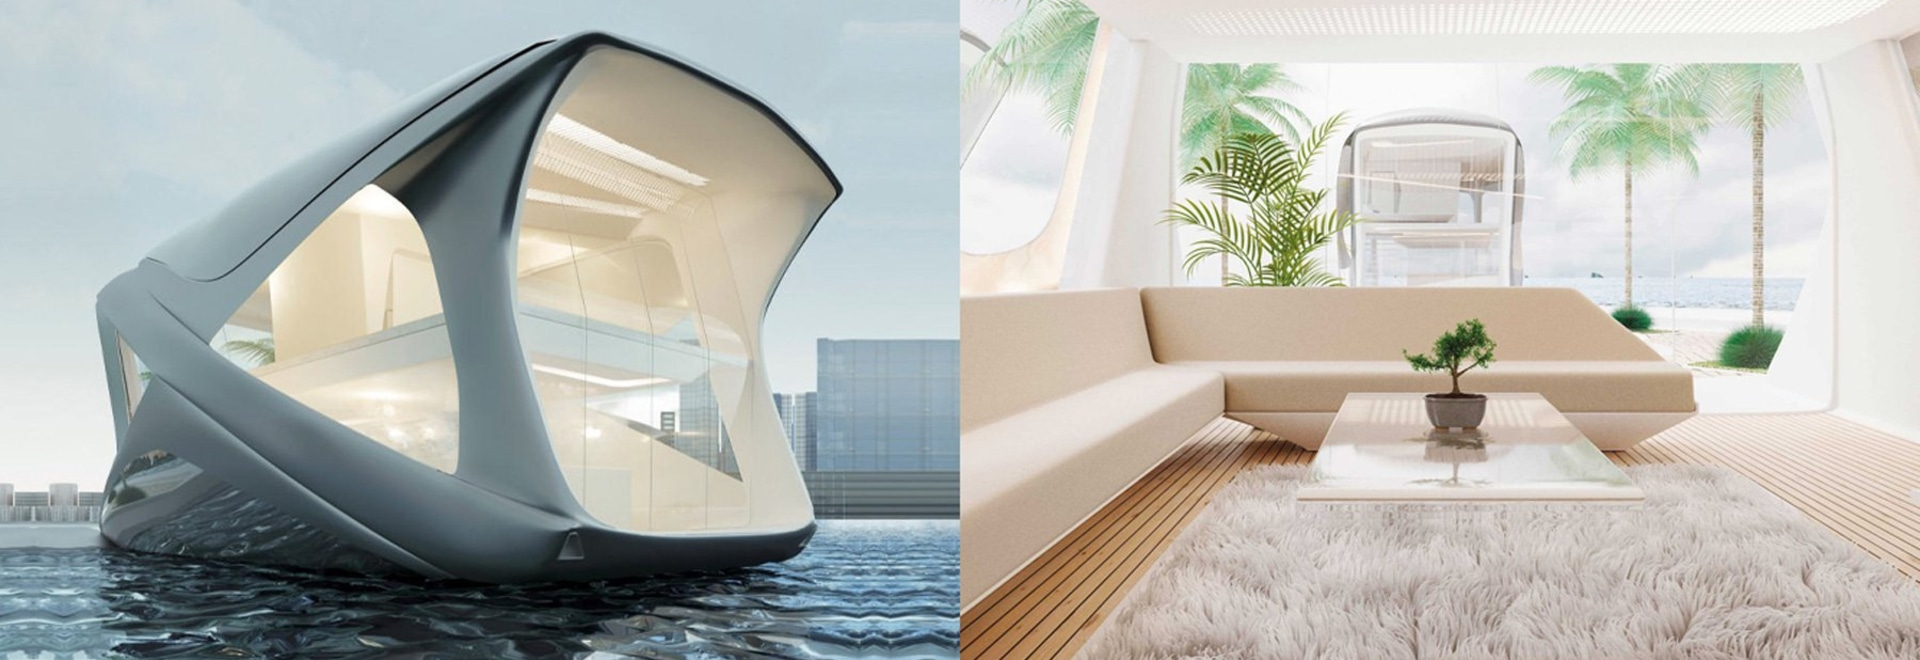 the 'ocean community' responds to rising sea levels with luxury houseboats